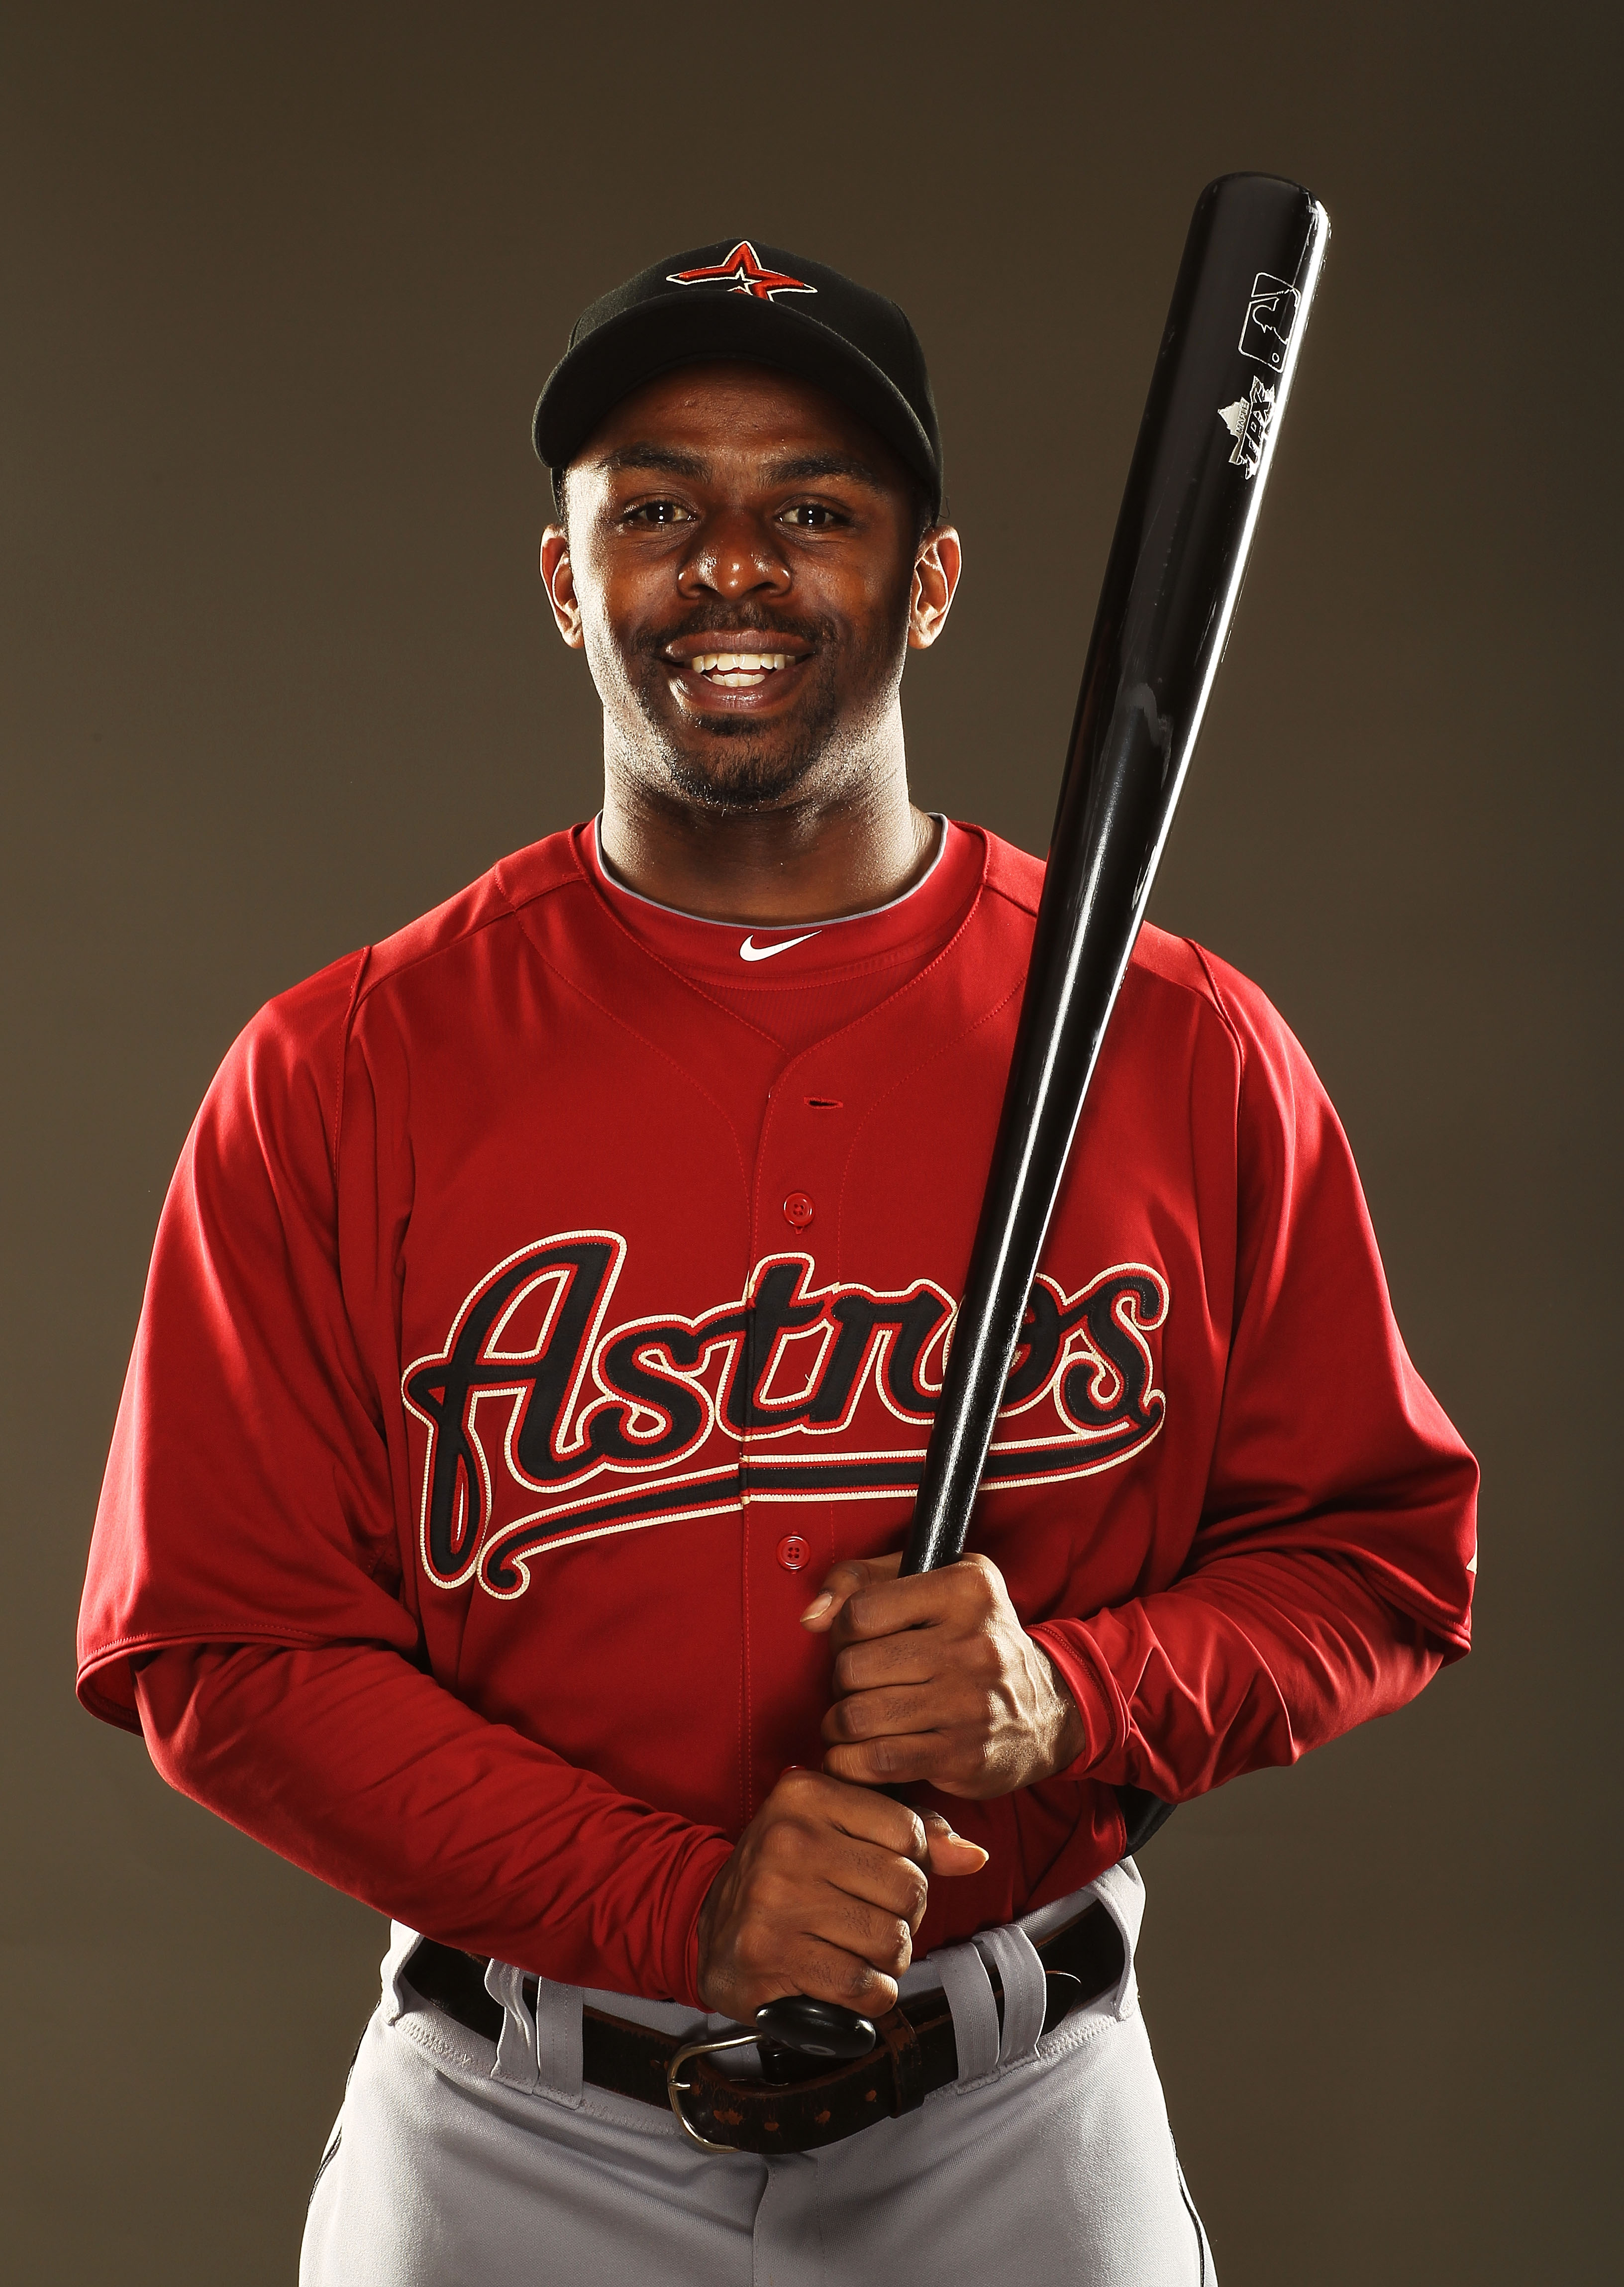 KISSIMMEE, FL - FEBRUARY 24:  Michael Bourn #21 of the Houston Astros poses for a portrait during Spring Training photo Day at Osceola County Stadium  on February 24, 2011 in Kissimmee, Florida.  (Photo by Al Bello/Getty Images)